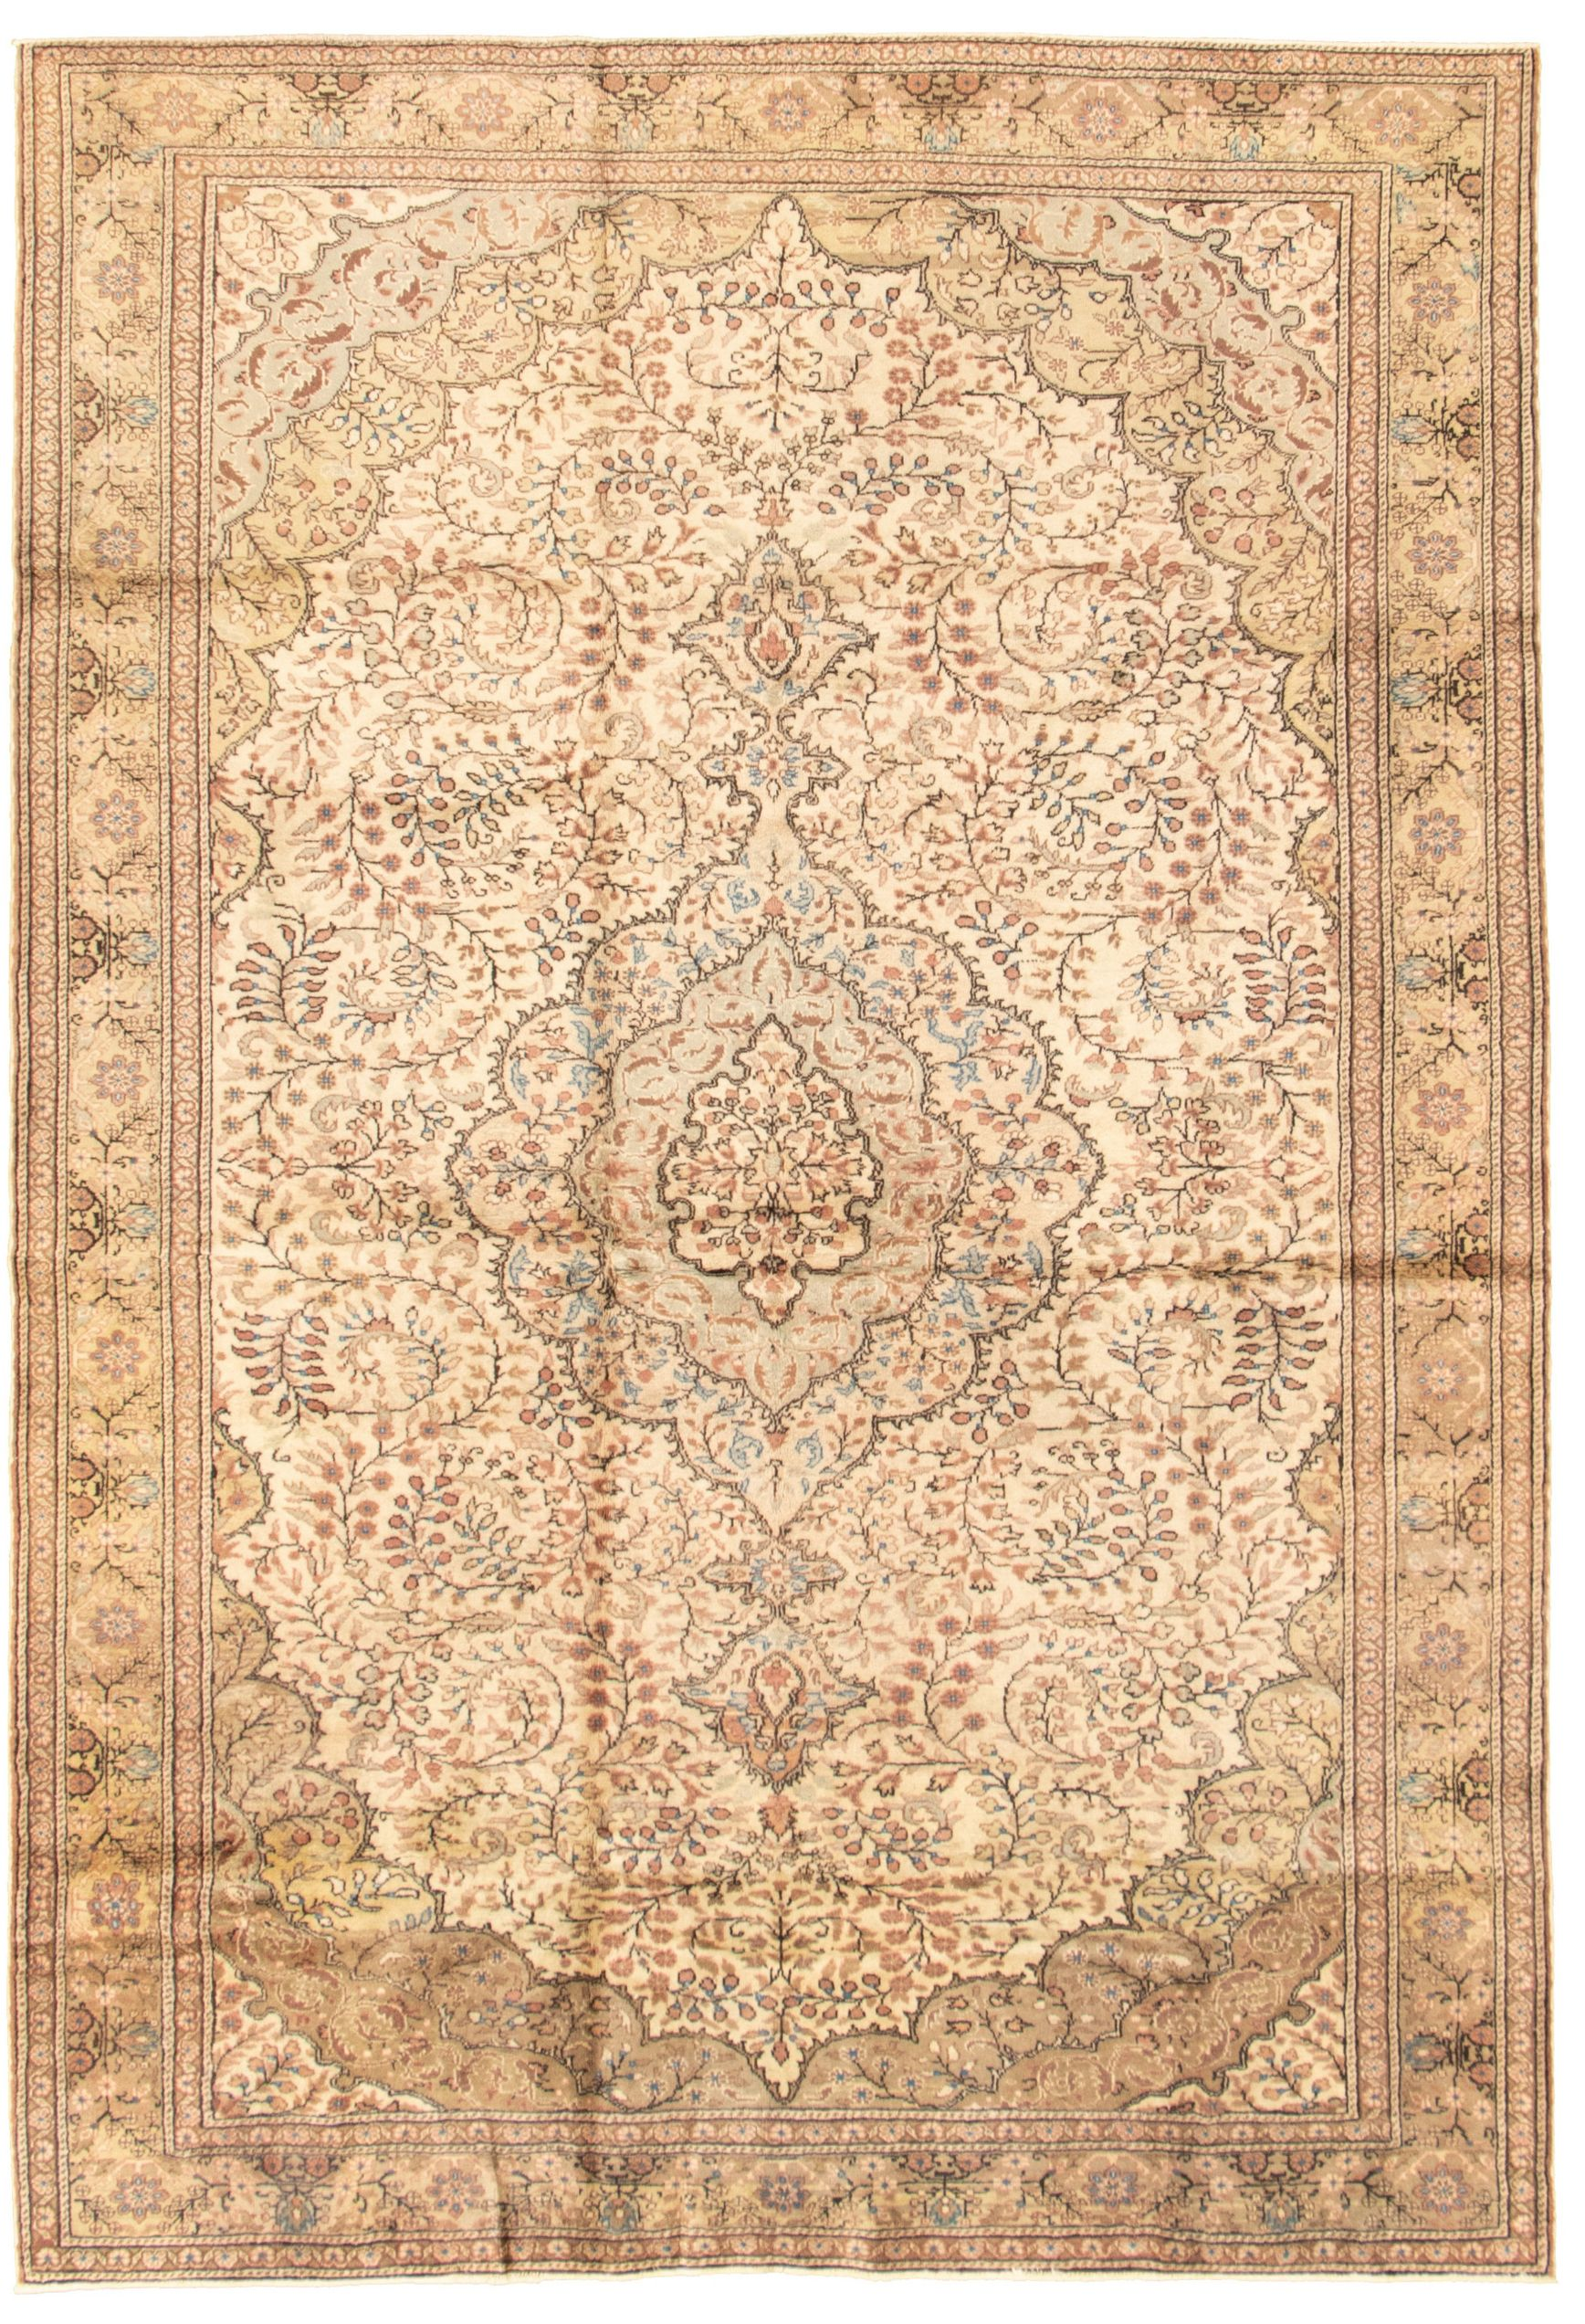 """Hand-knotted Keisari Vintage Cream Wool Rug 6'7"""" x 9'8""""  Size: 6'7"""" x 9'8"""""""